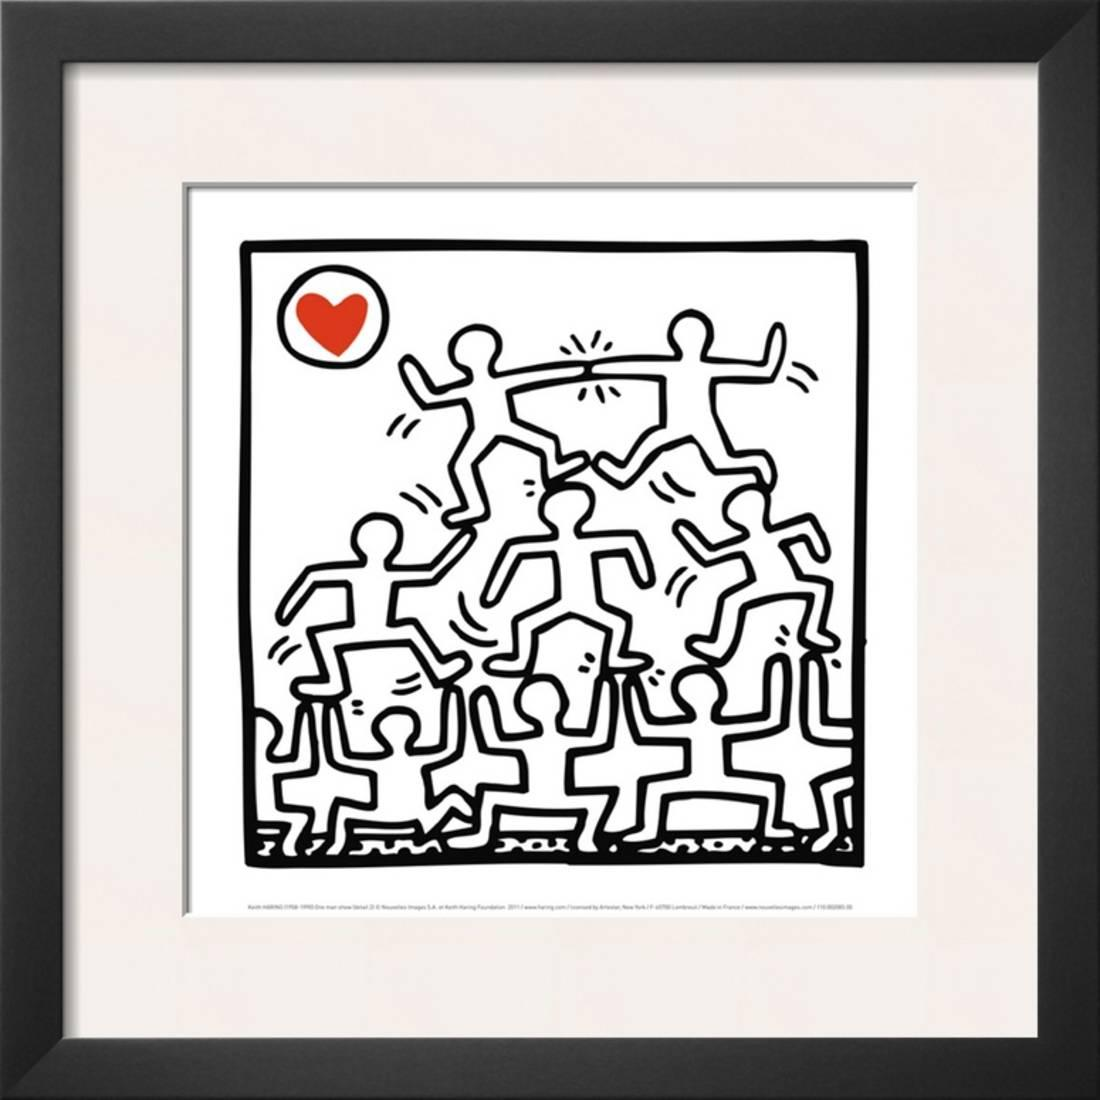 One Man Show (details) Framed Art Print Wall Art  By Keith Haring - 17.5x17.5